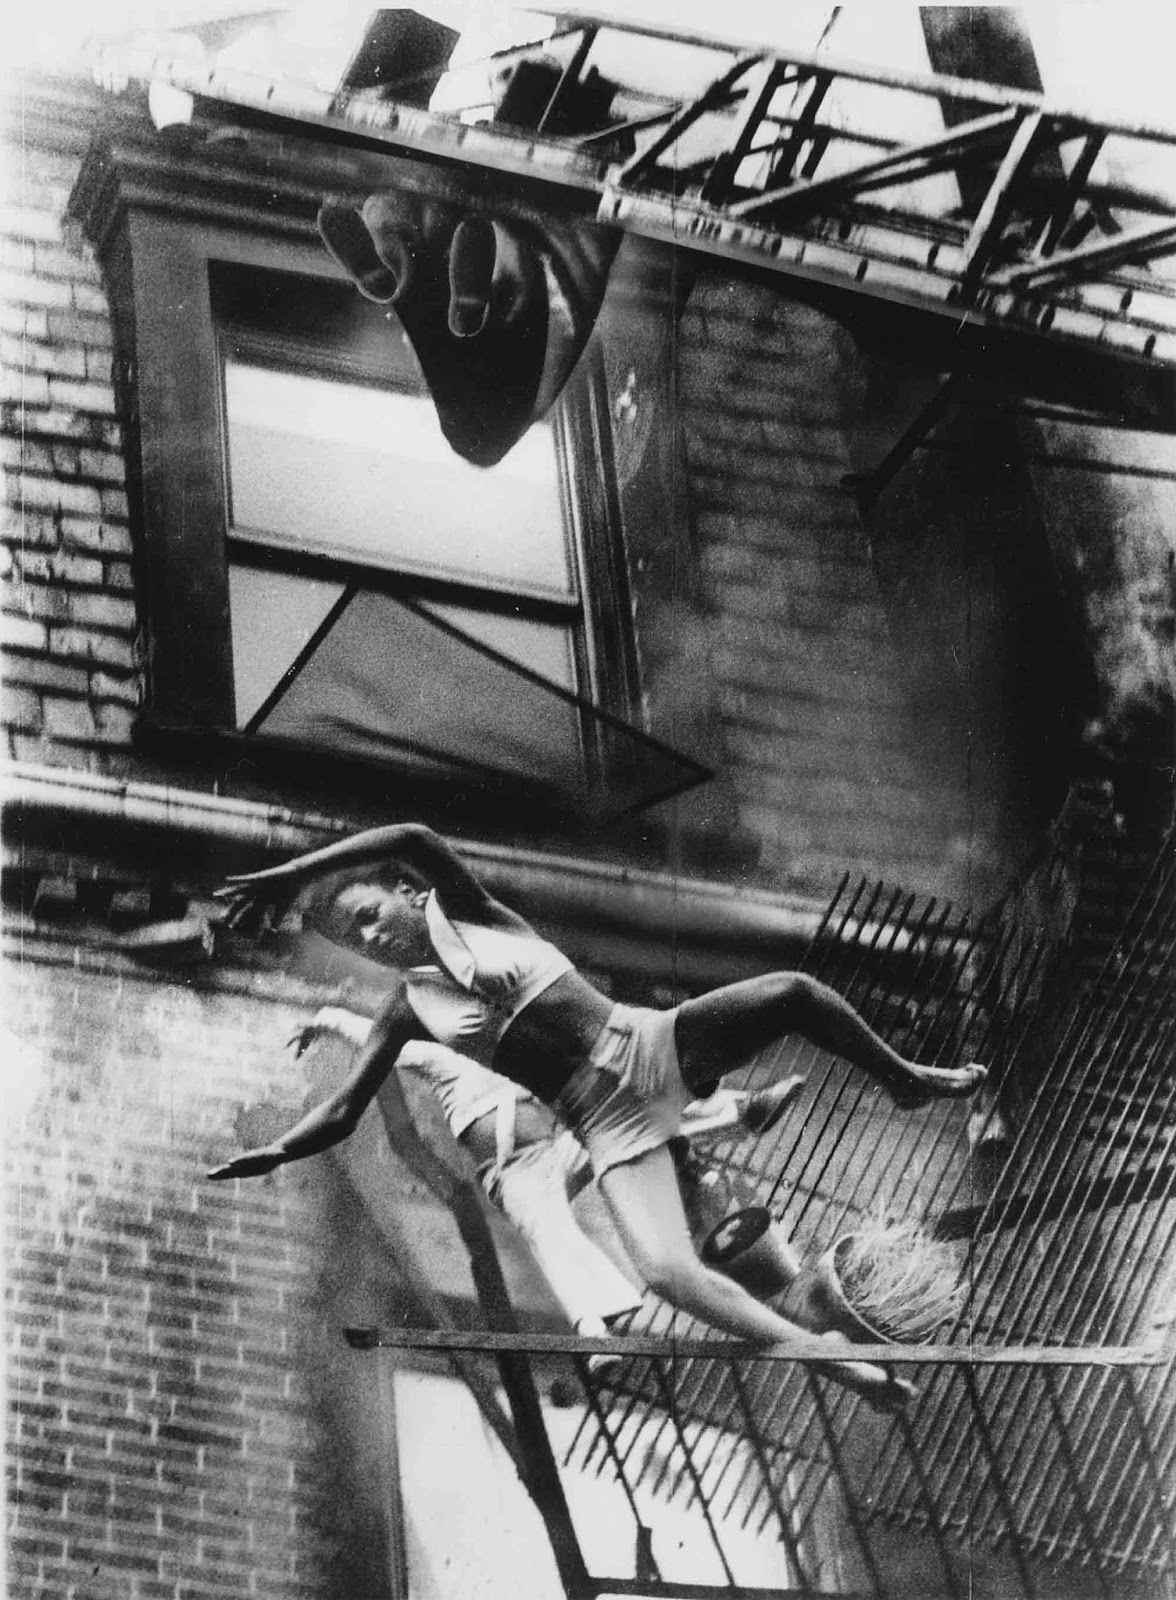 A Mother And Her Daughter Falling From A Fire Escape 1975